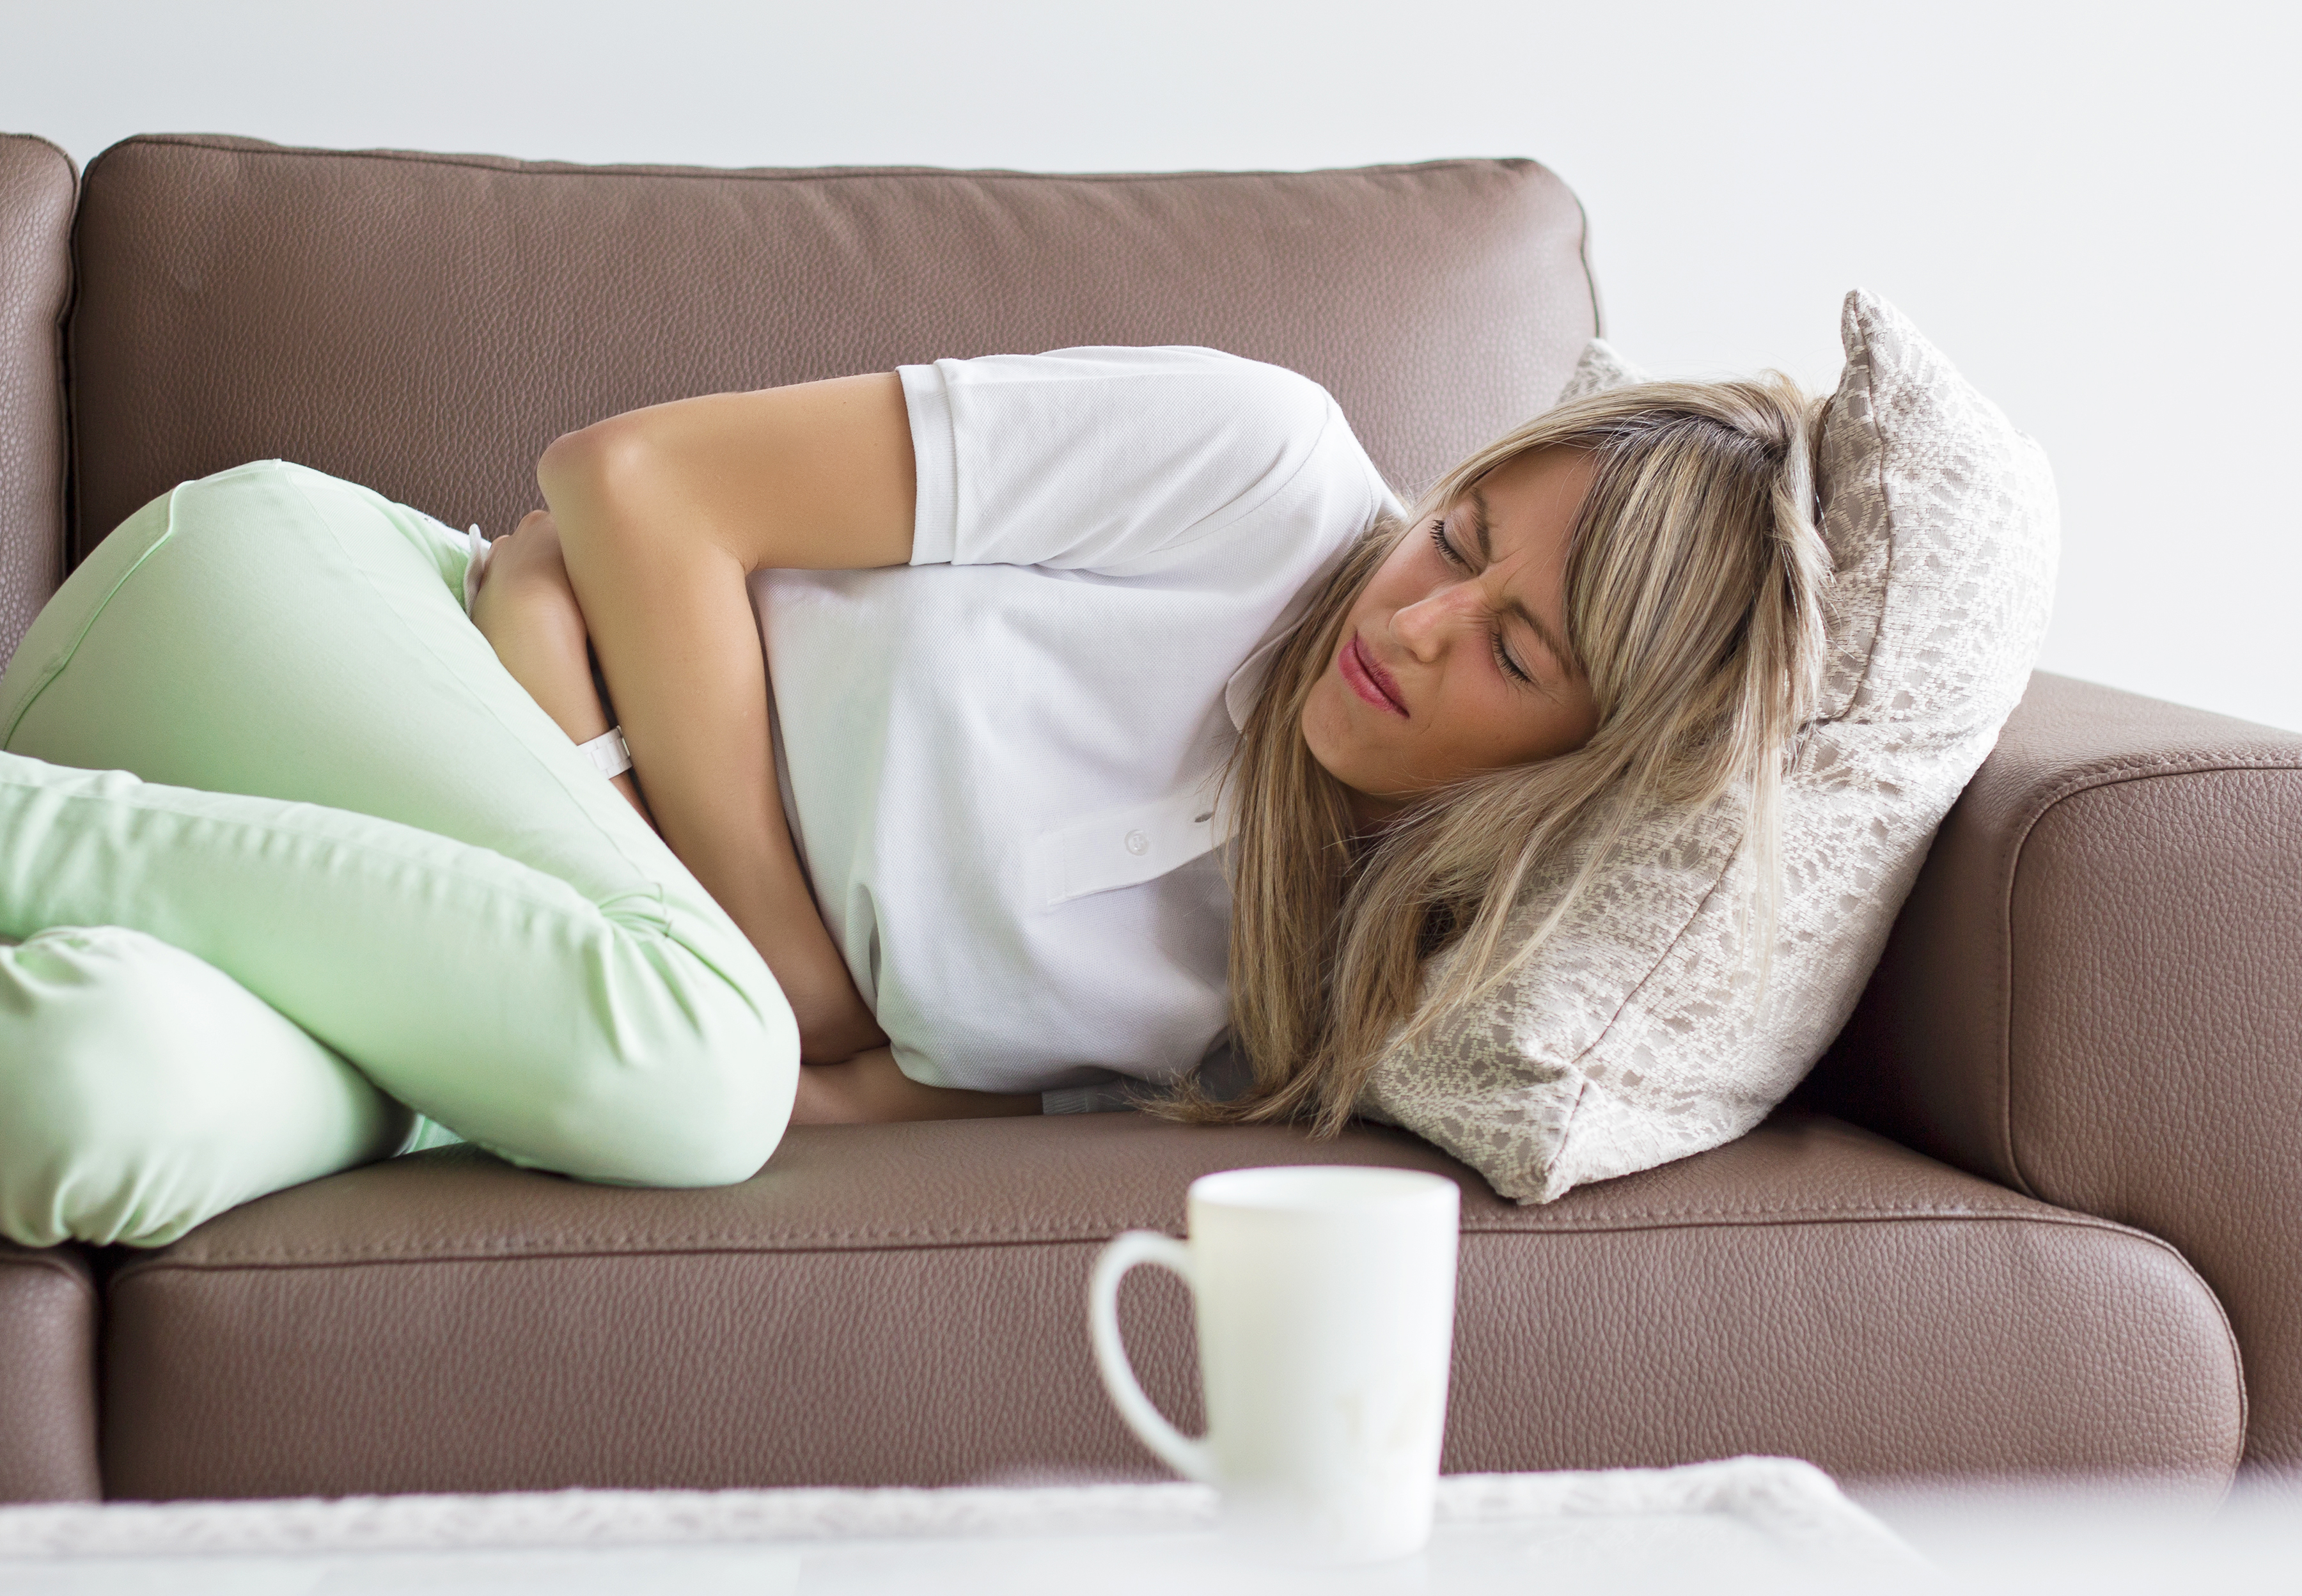 woman on couch having menstrual cramps or intestinal stomach pain